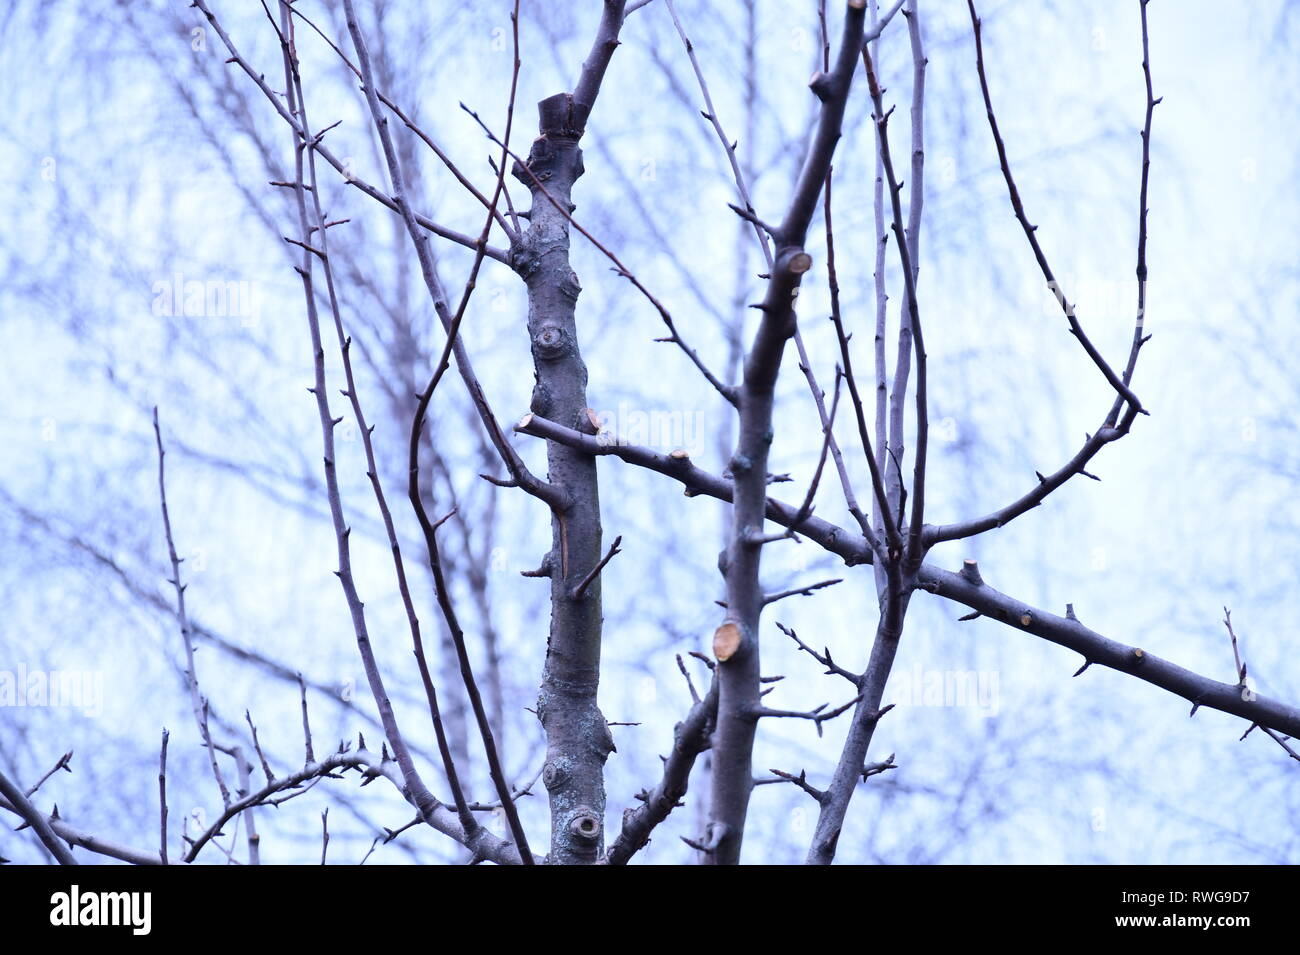 fruit tree pruning - wintercut Stock Photo